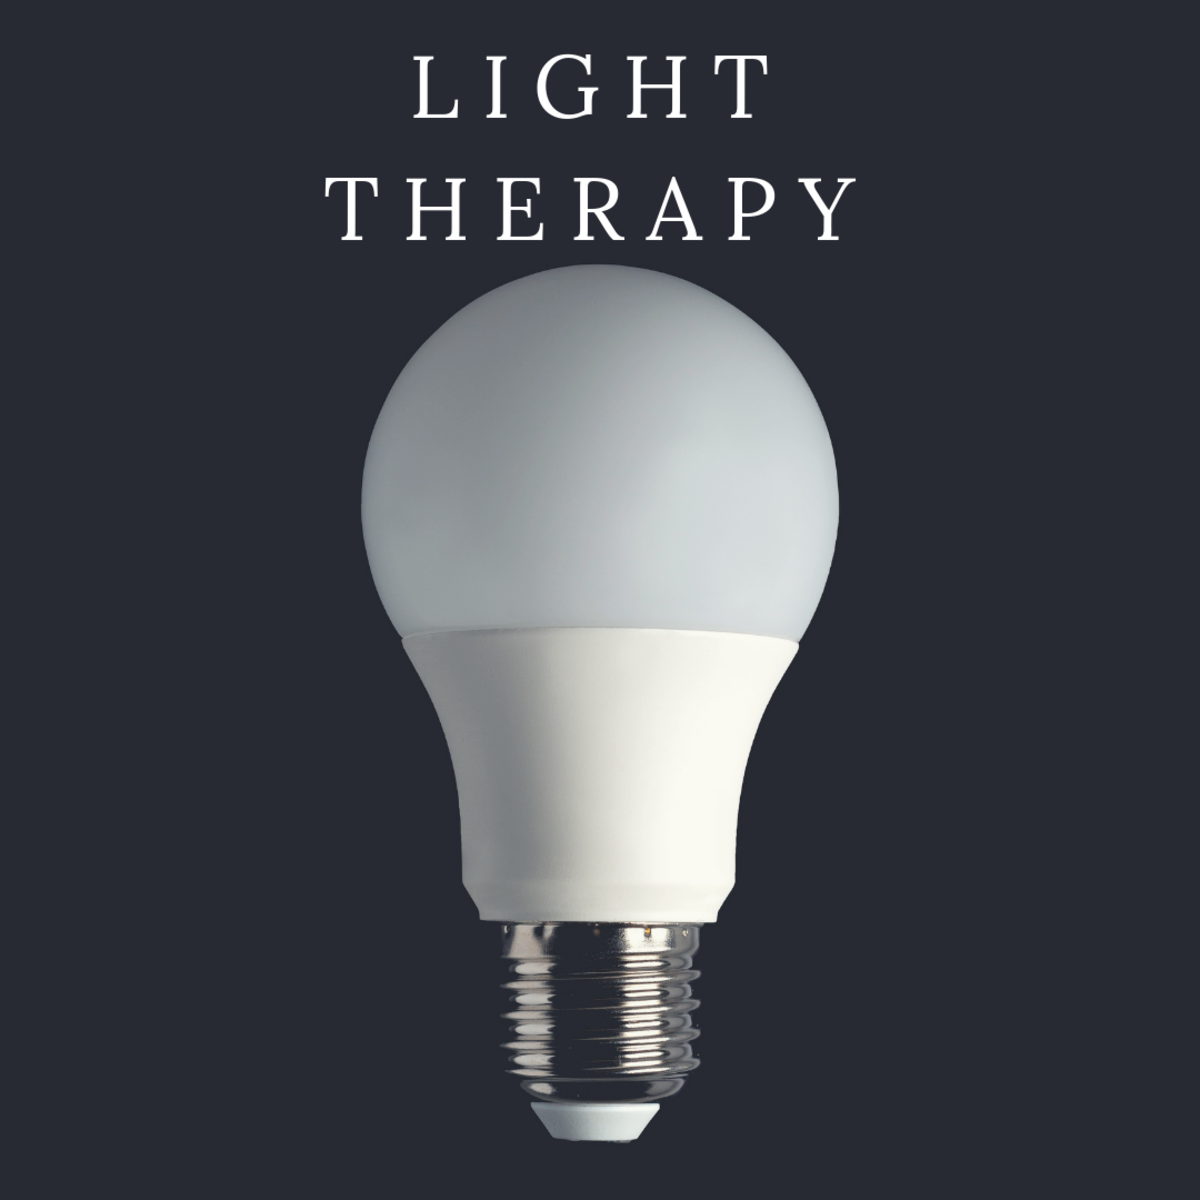 The Healing Benefits of Light Therapy